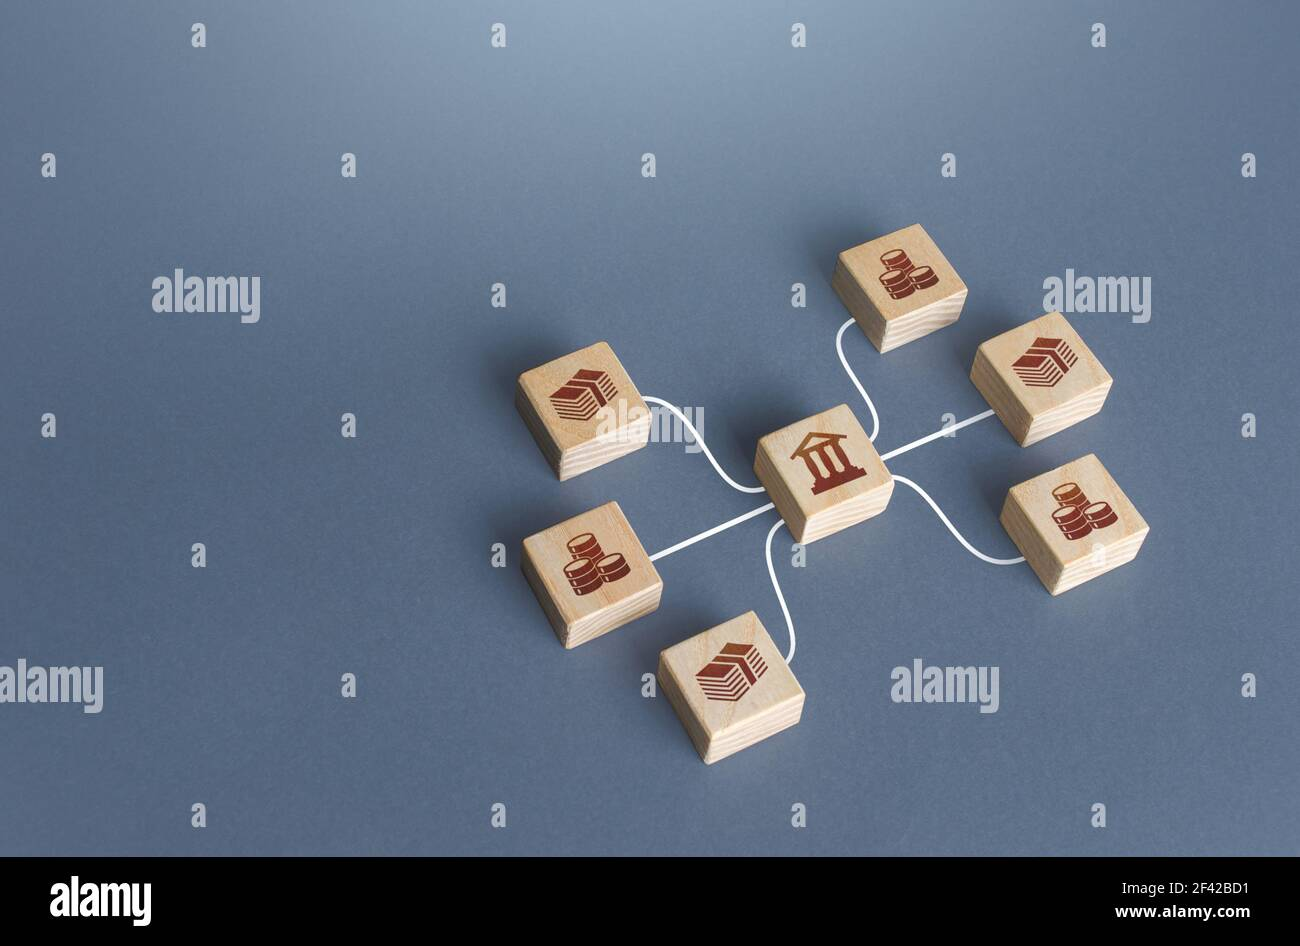 Bank blocks are linked to money by lines. Operation of money funds, transactions. Lending, deposits. Capital Markets. Investment. Borrowing. Capitaliz Stock Photo